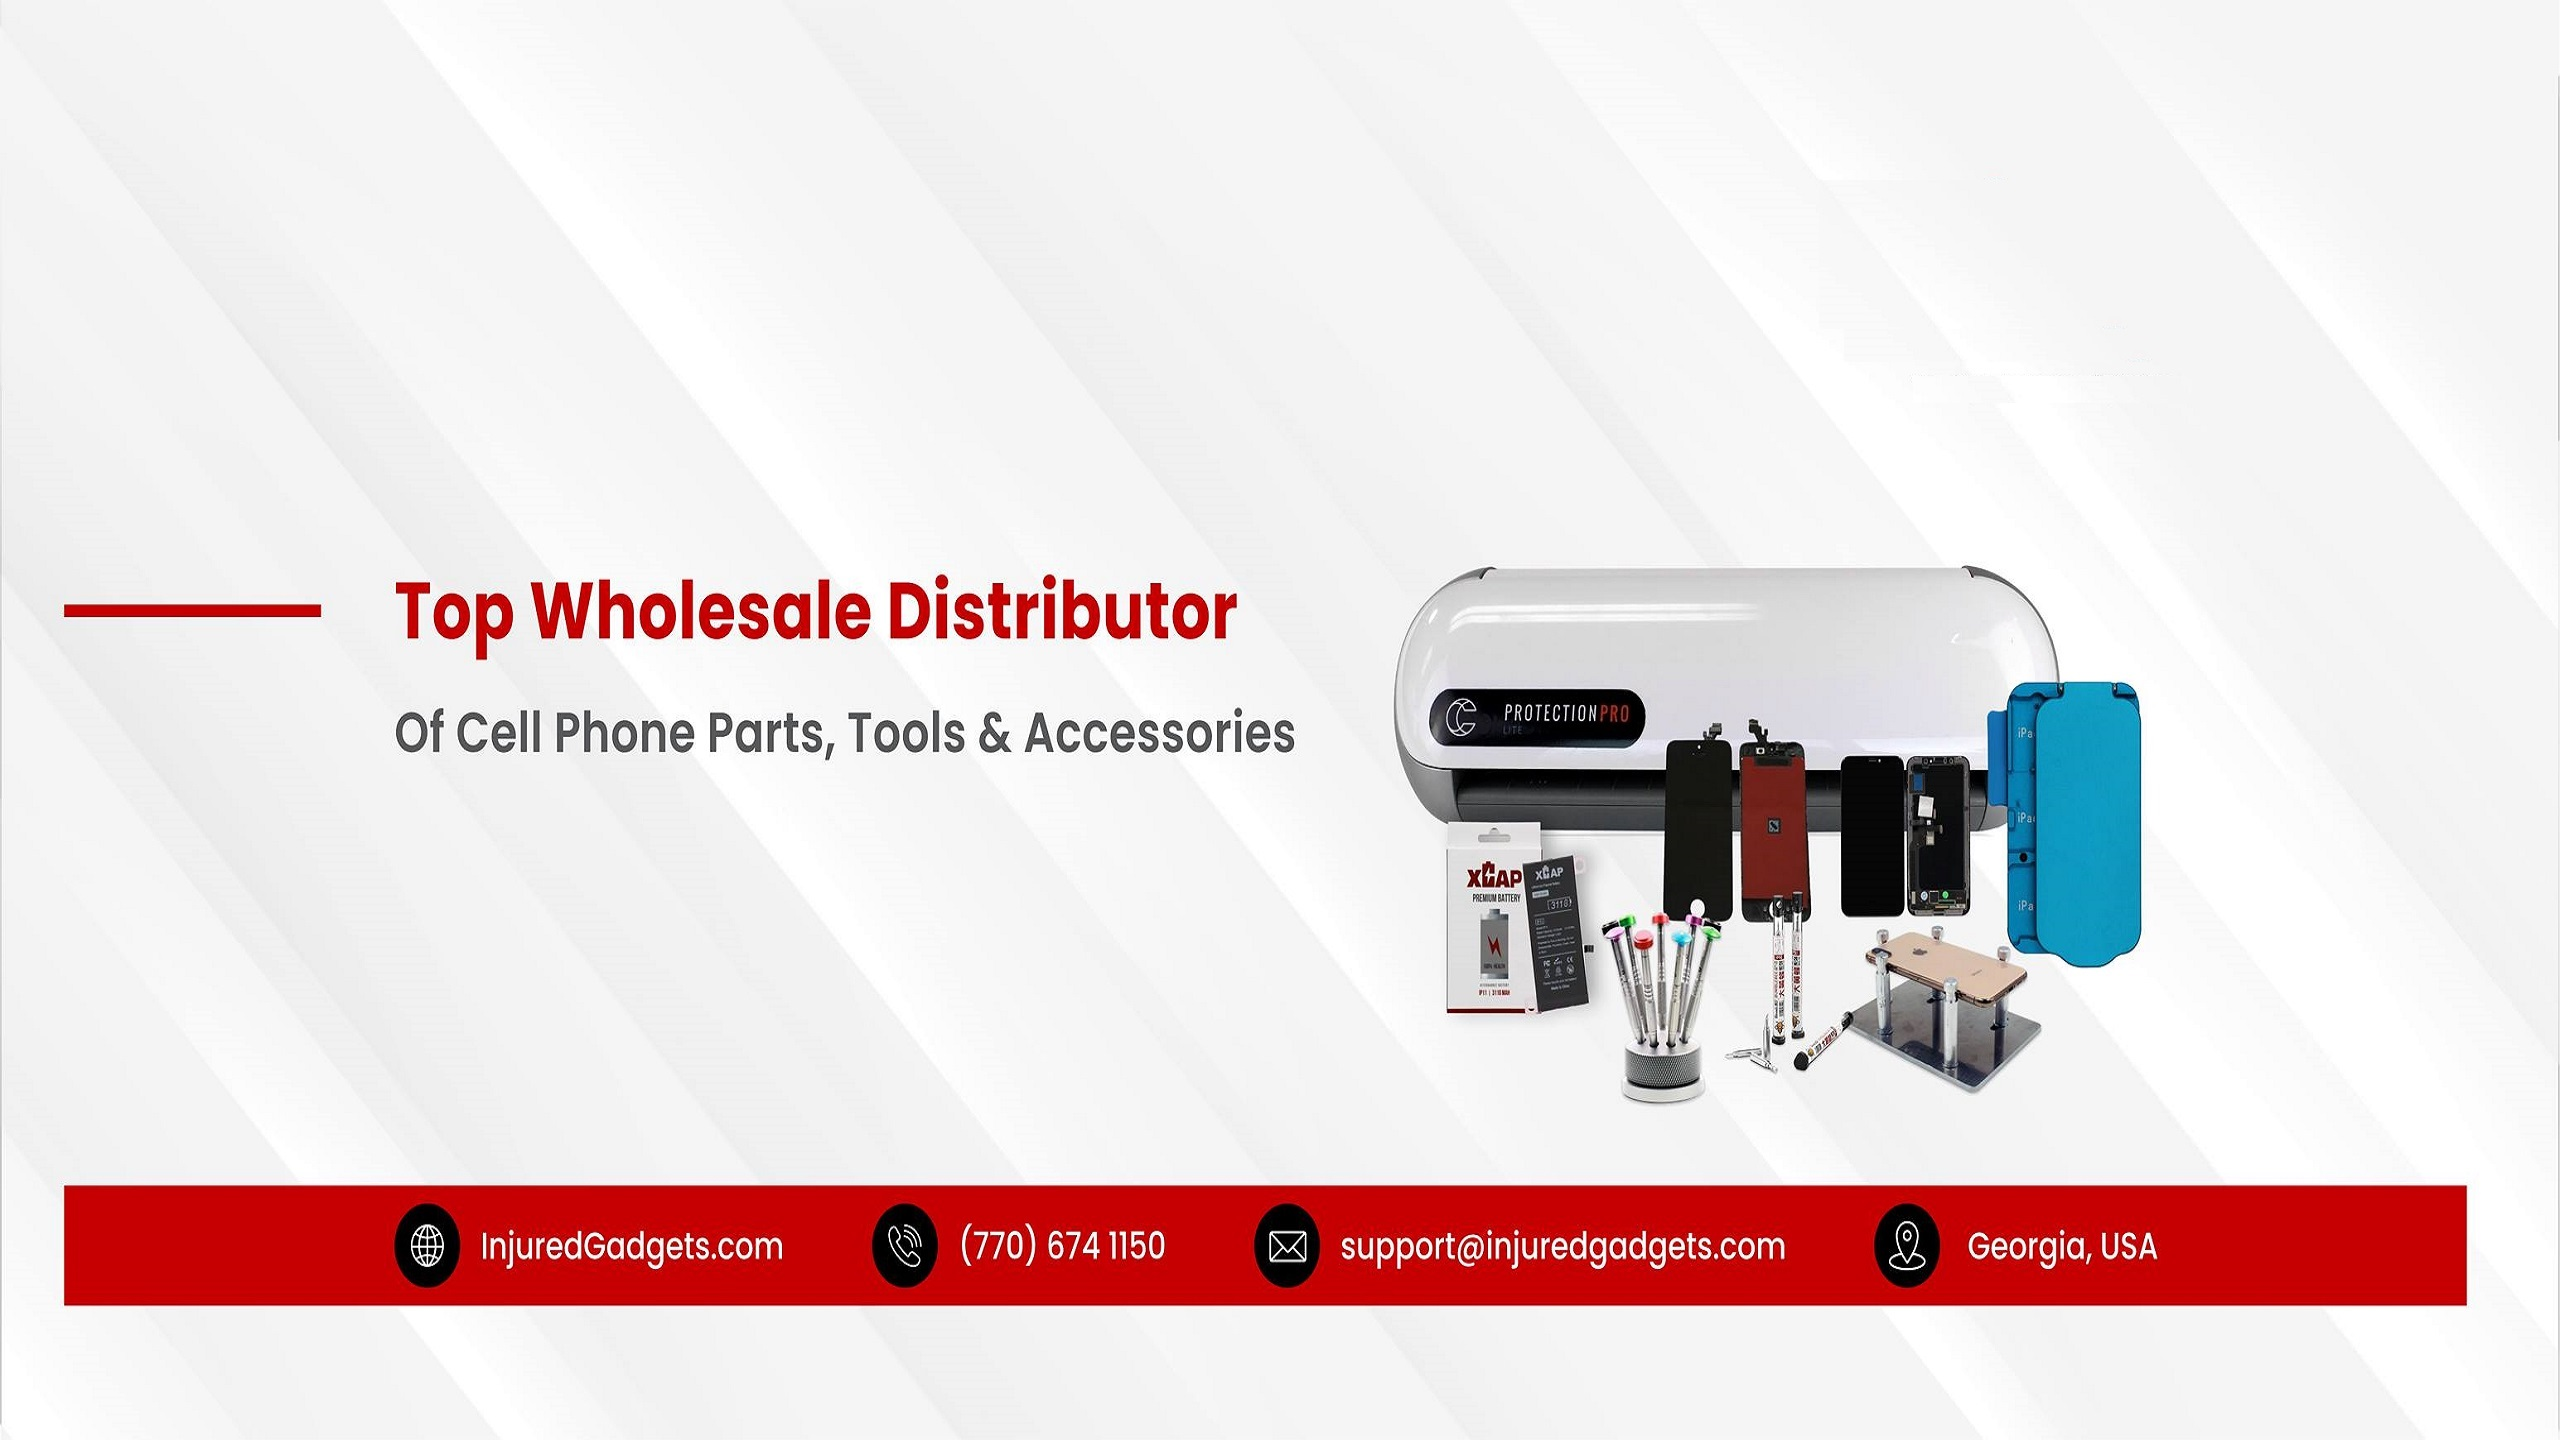 Injured Gadgets Cover - Top wholesaler distributor of Cell Phone Parts, Tools & Accessories